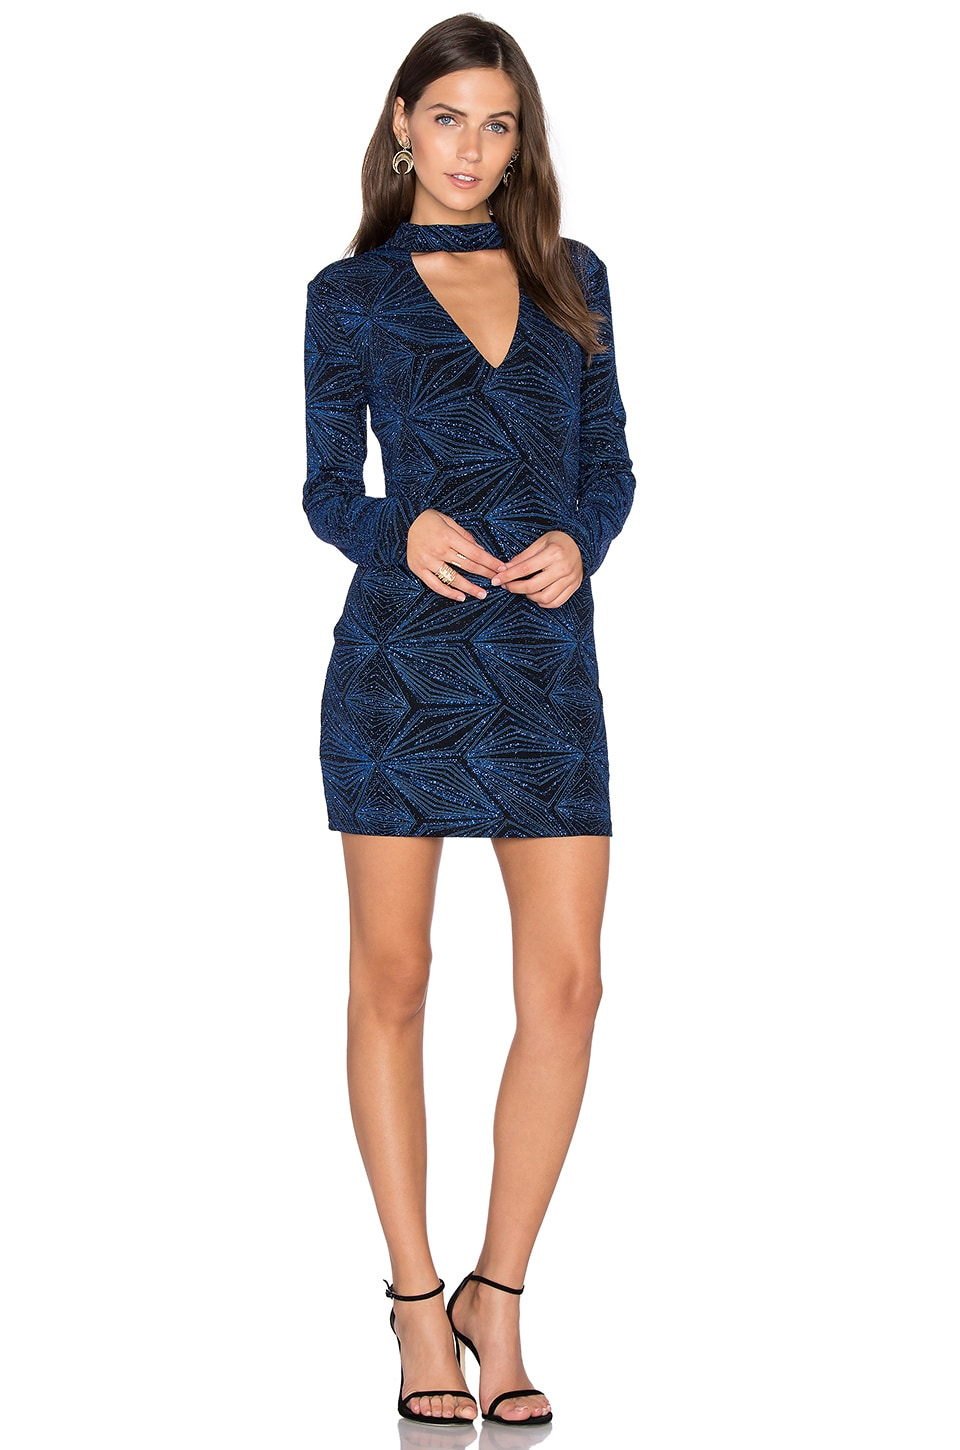 Long Sleeve Bodycon Dress by Endless Rose